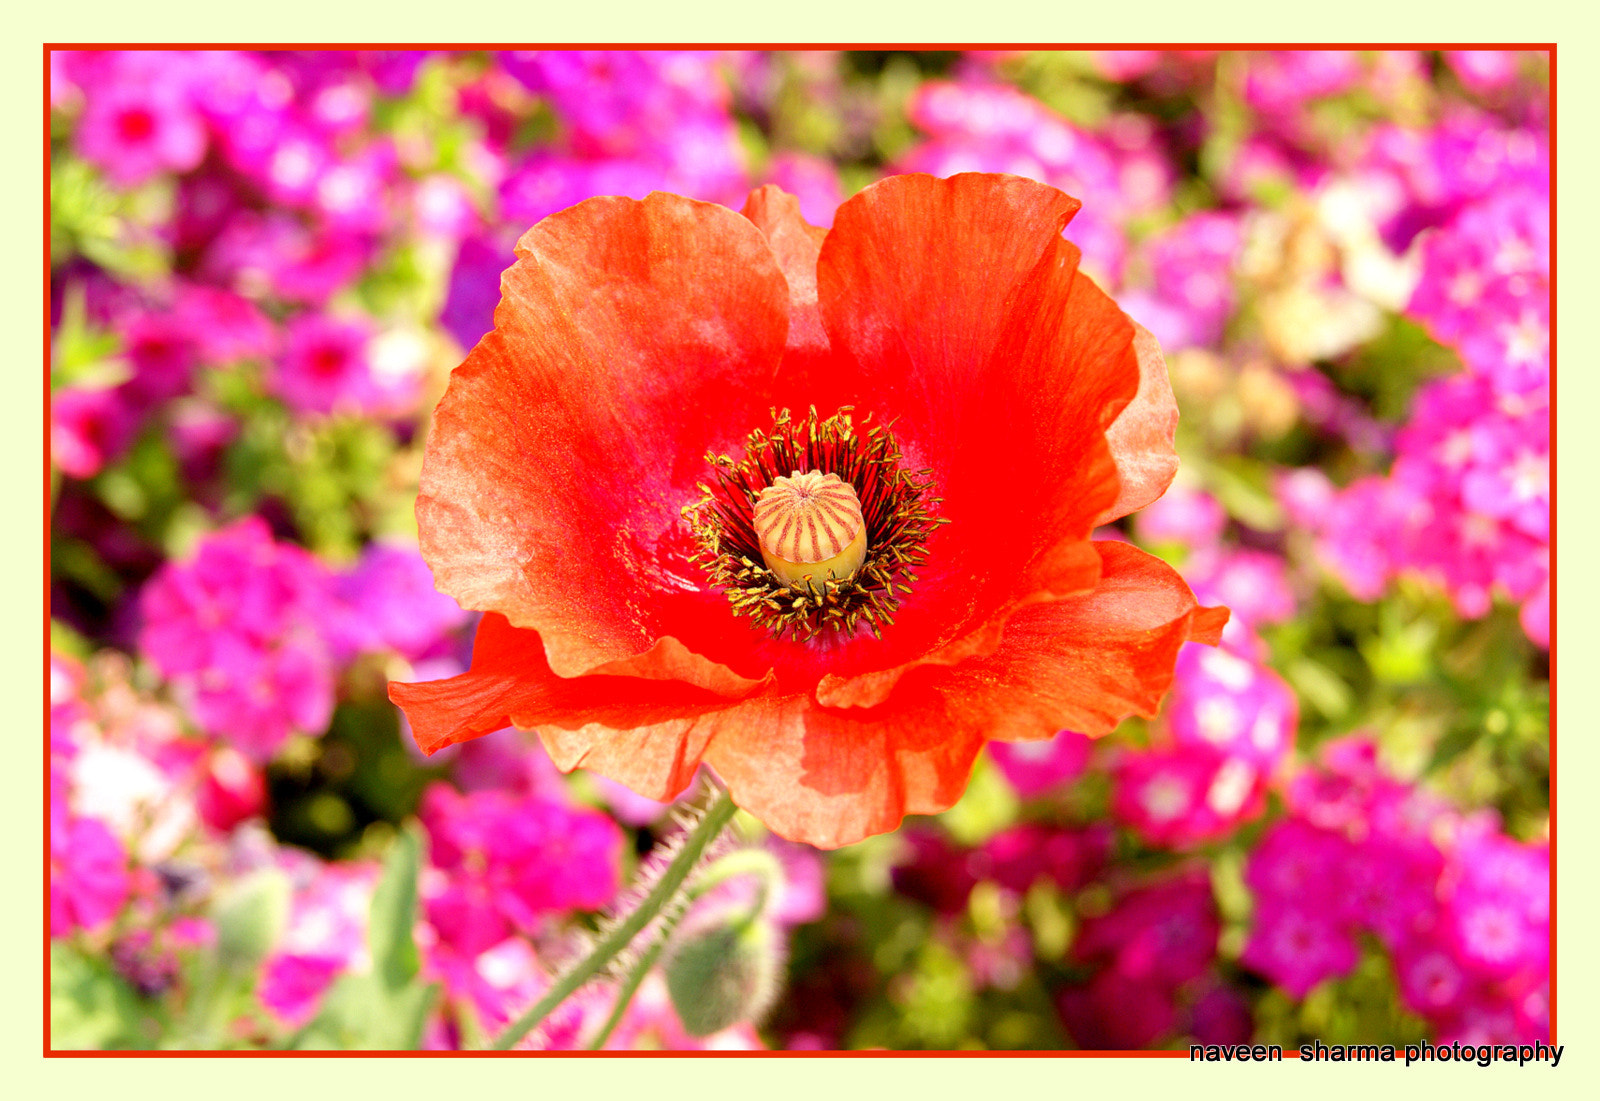 Photograph Poppy glamour by naveen sharma on 500px